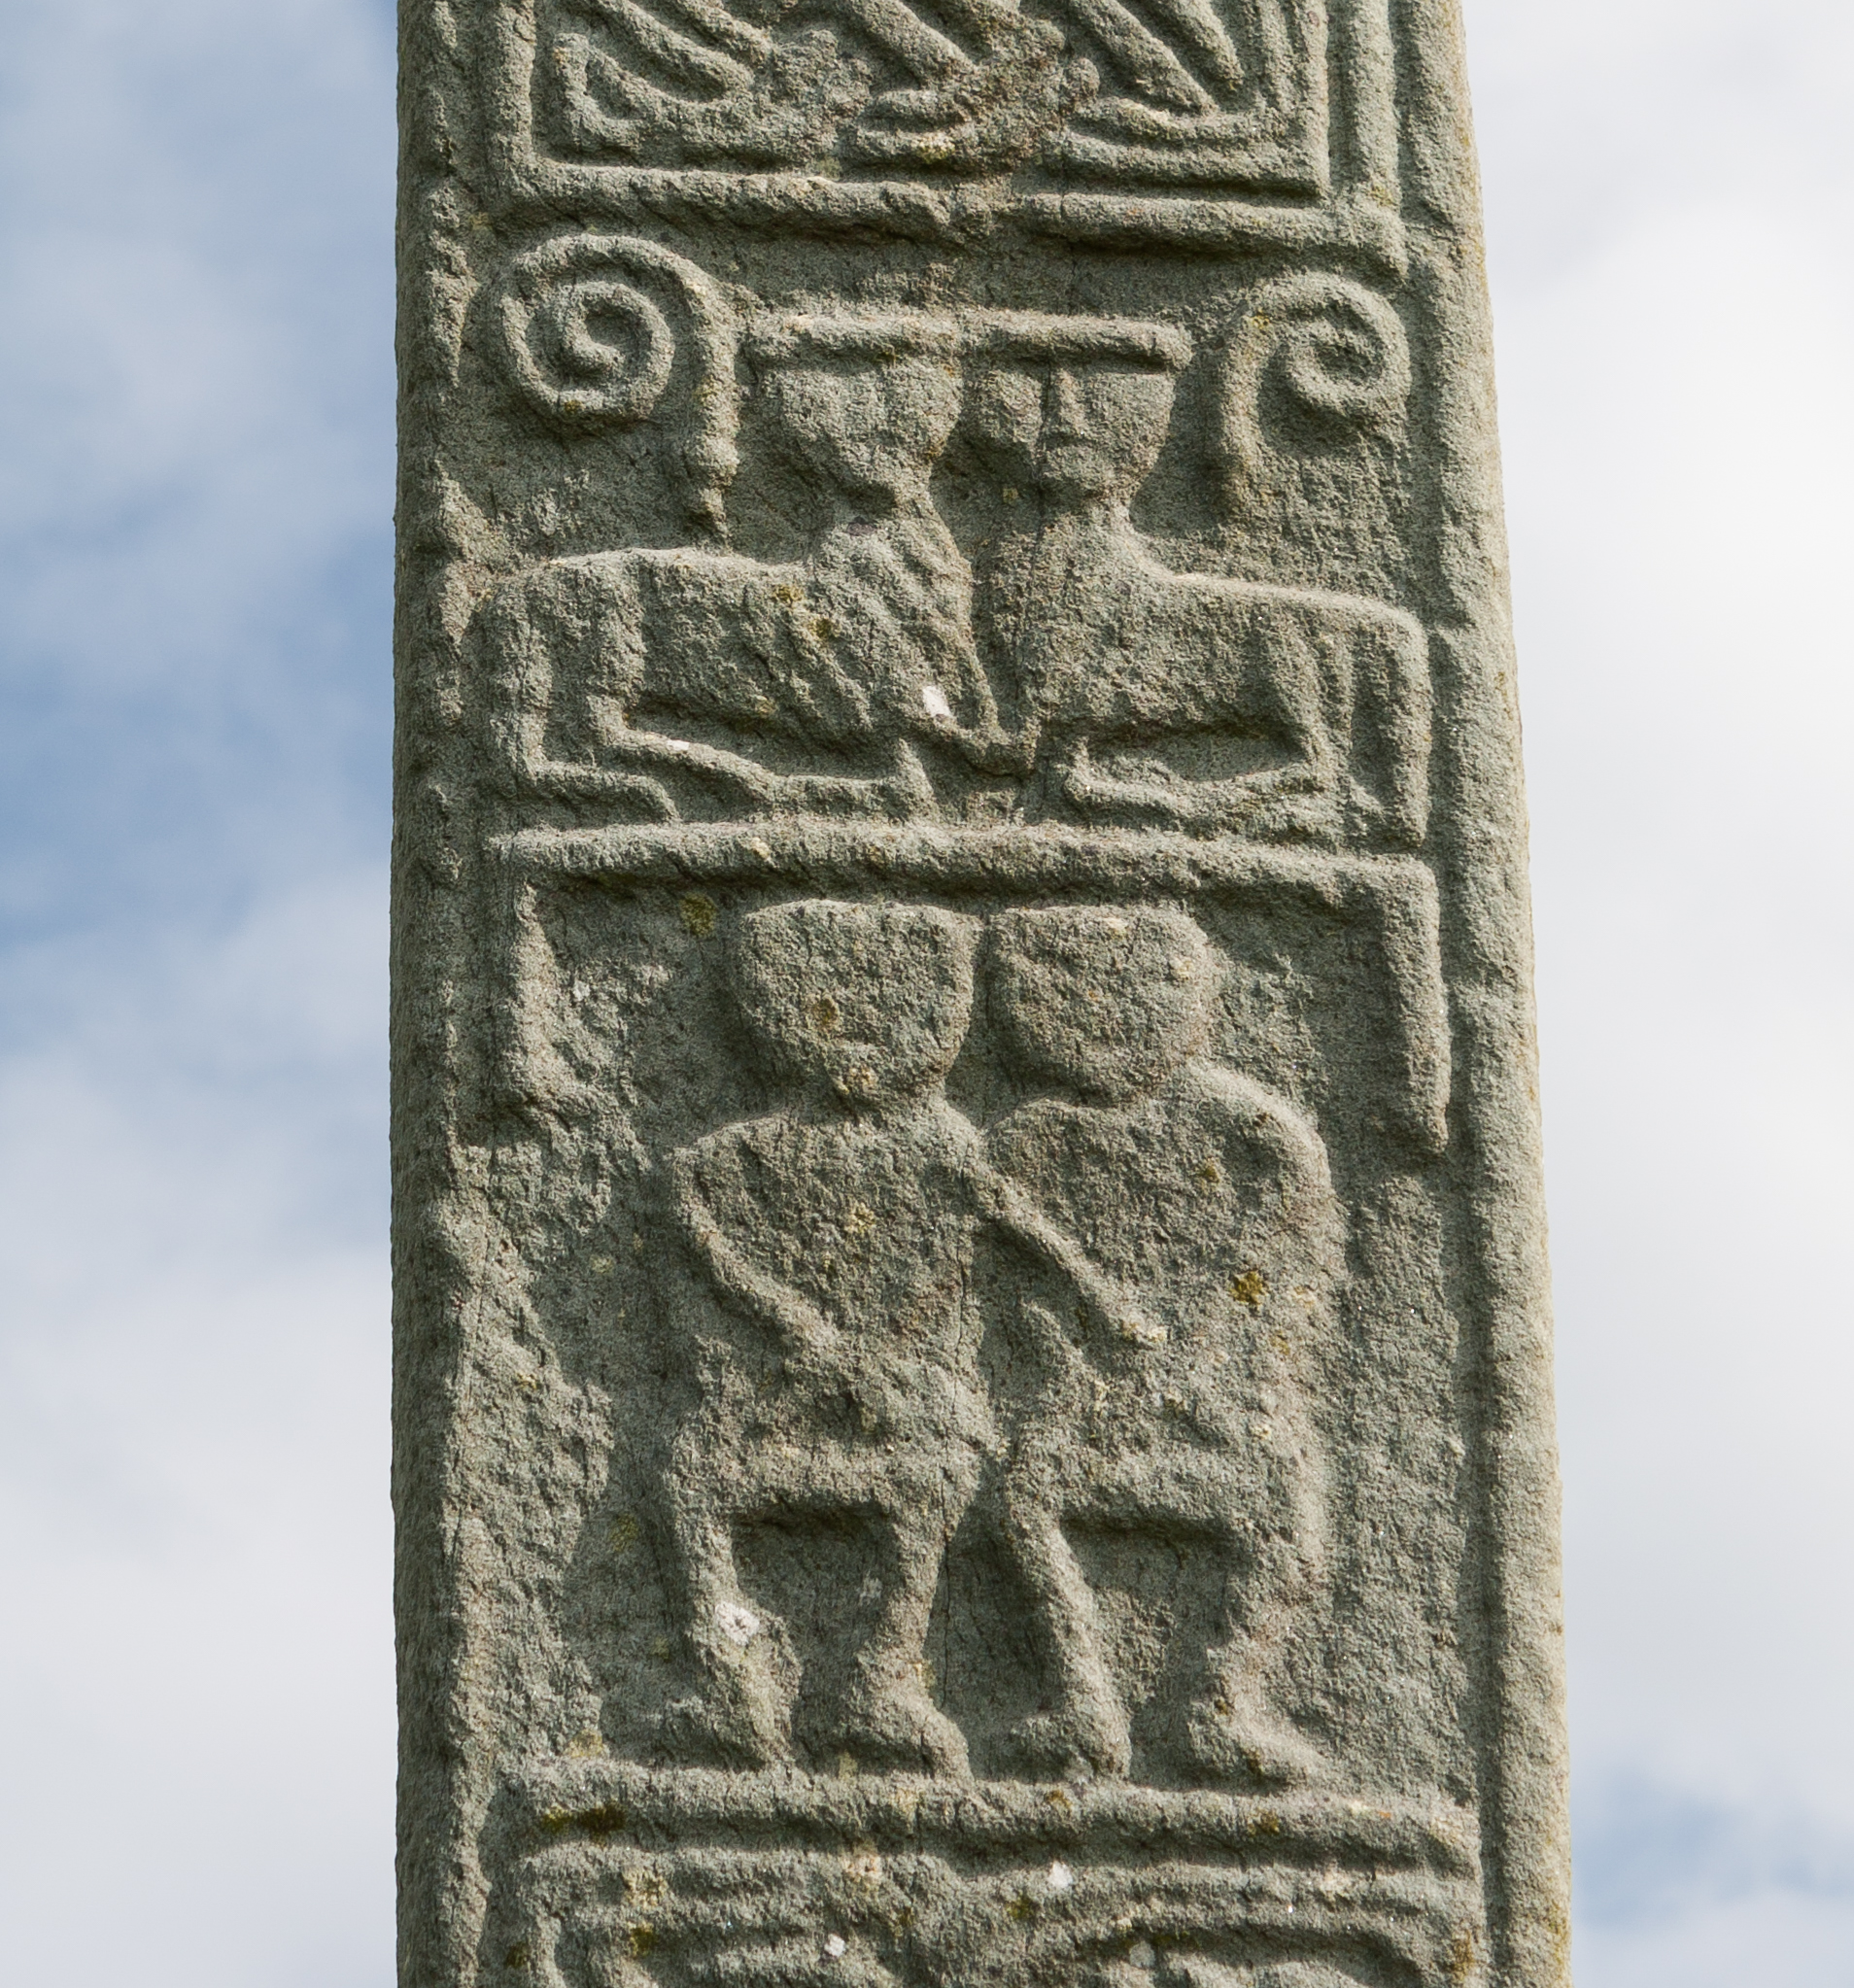 Clonca High Cross (west face), from Wikimedia Commons.